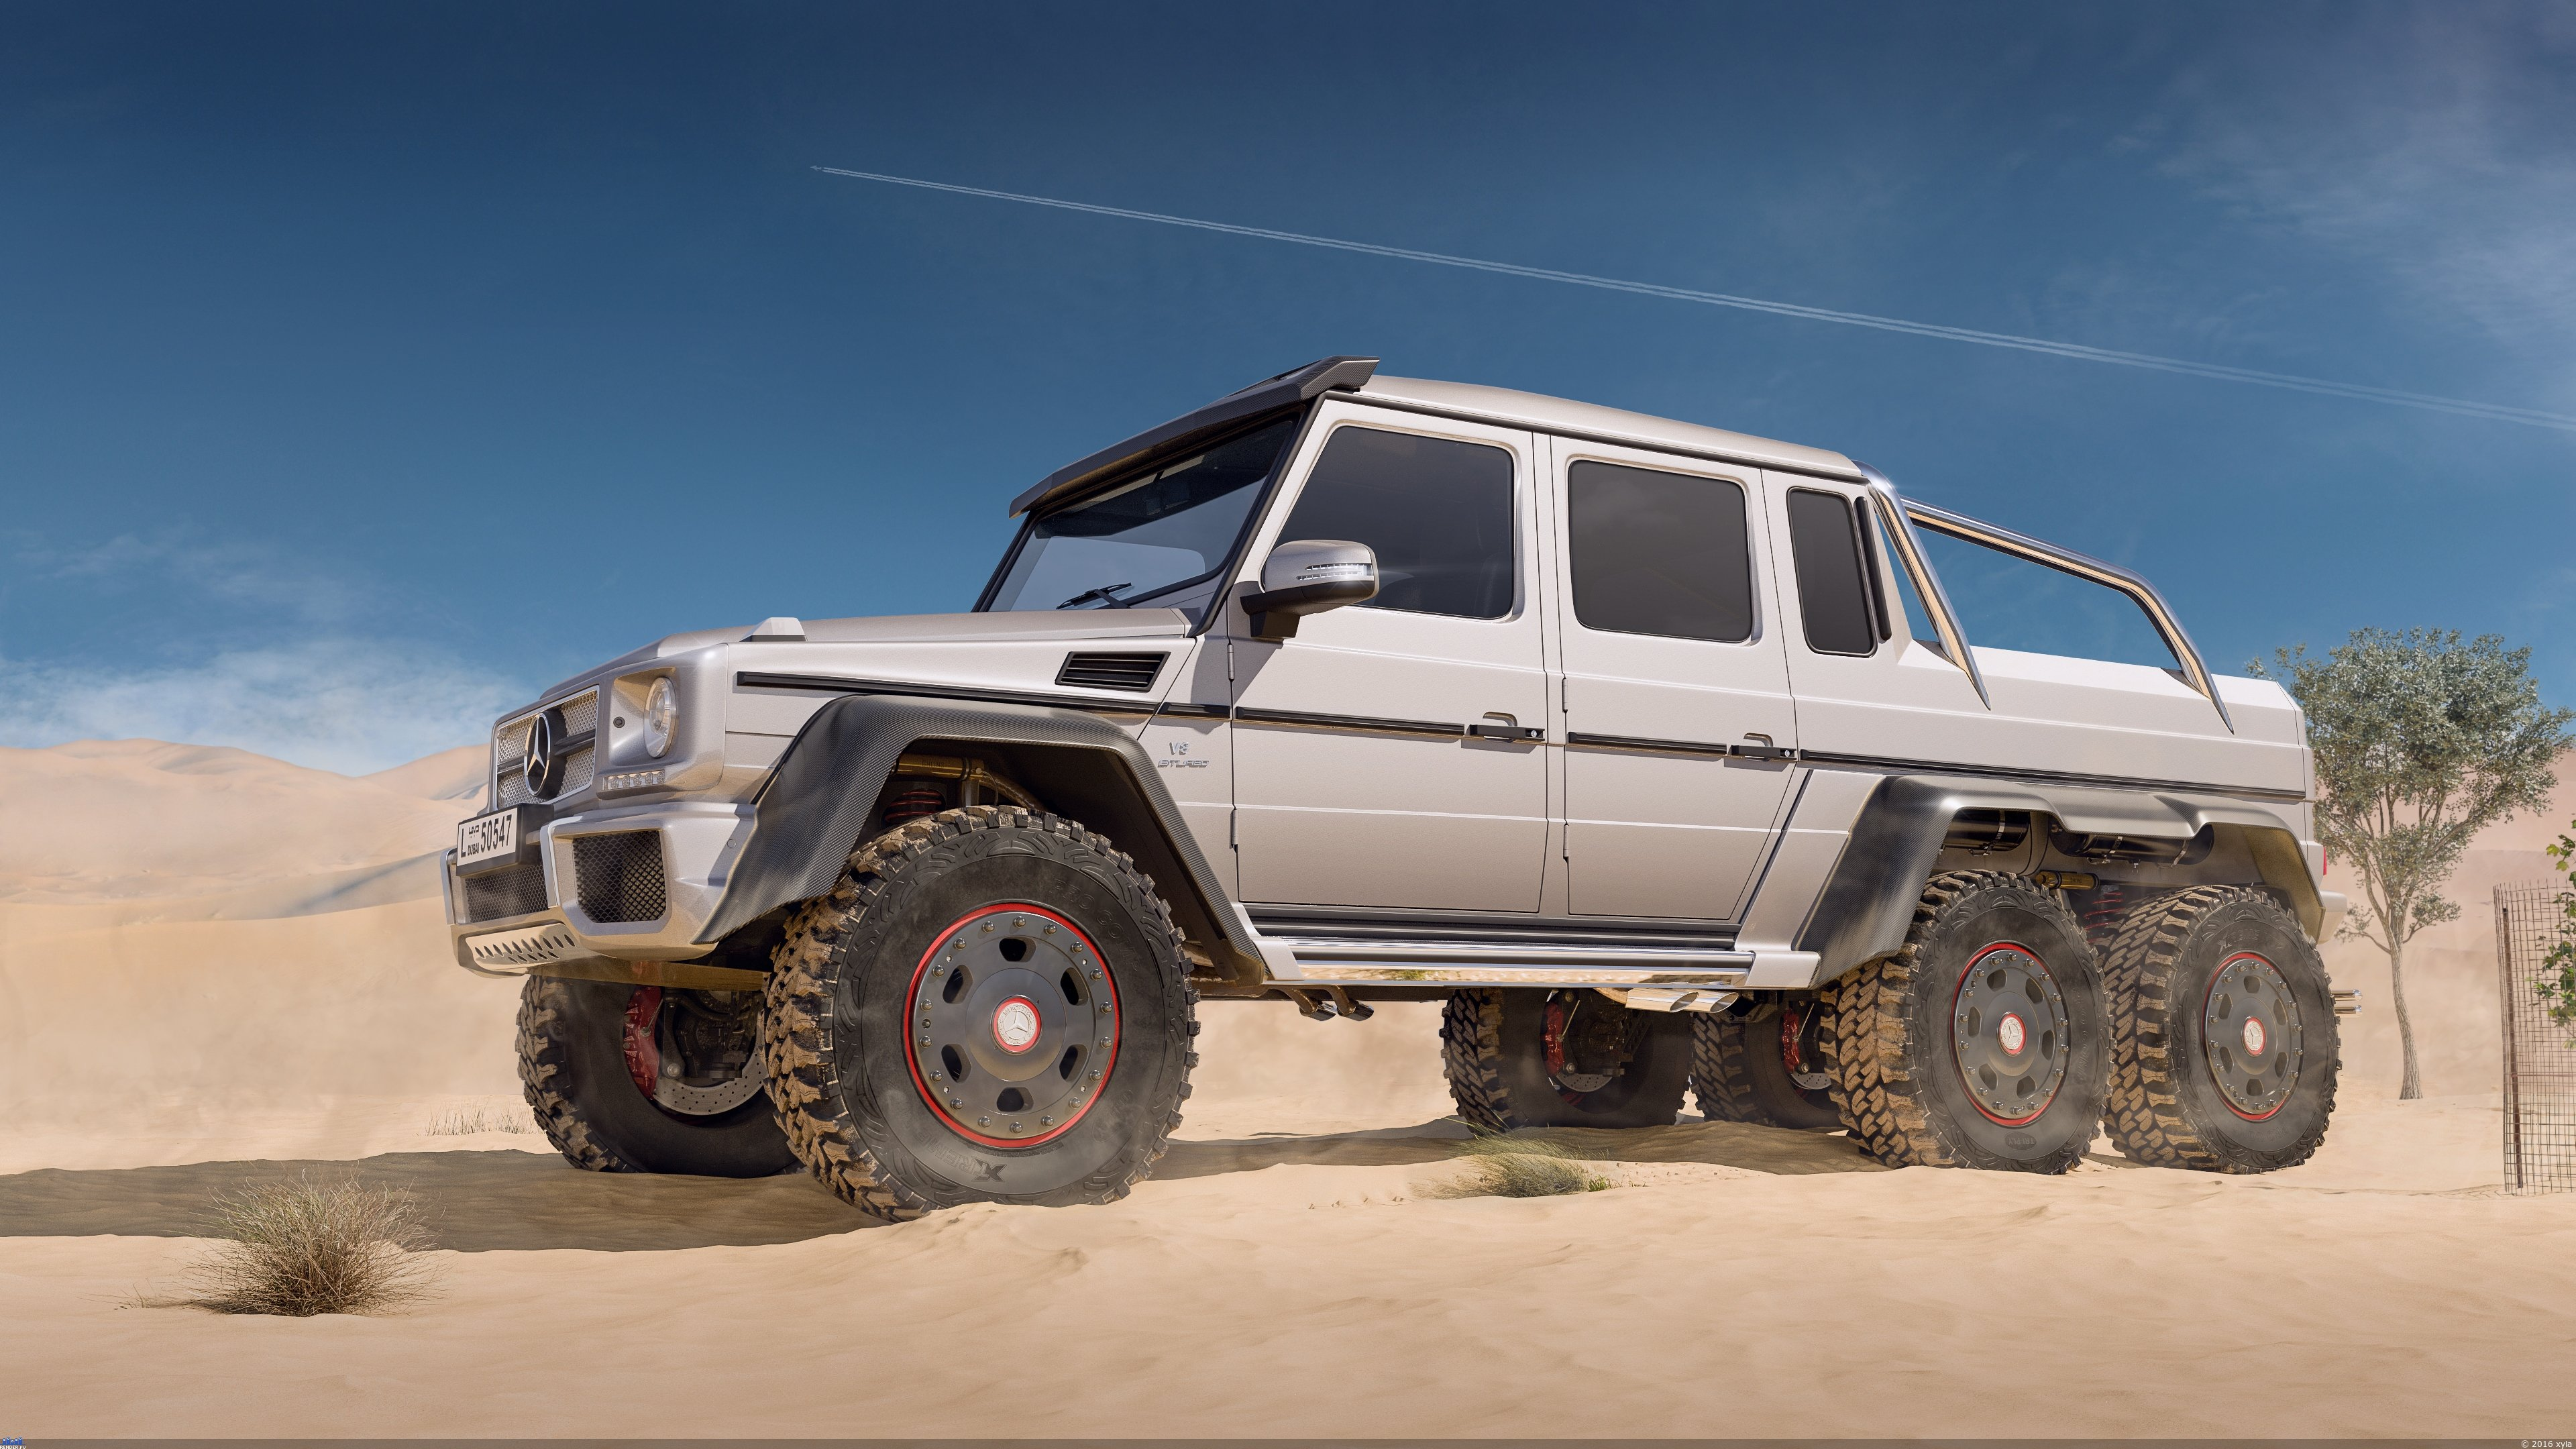 Mercedes Benz Amg G63 6x6 Hd Cars 4k Wallpapers Images Backgrounds Photos And Pictures